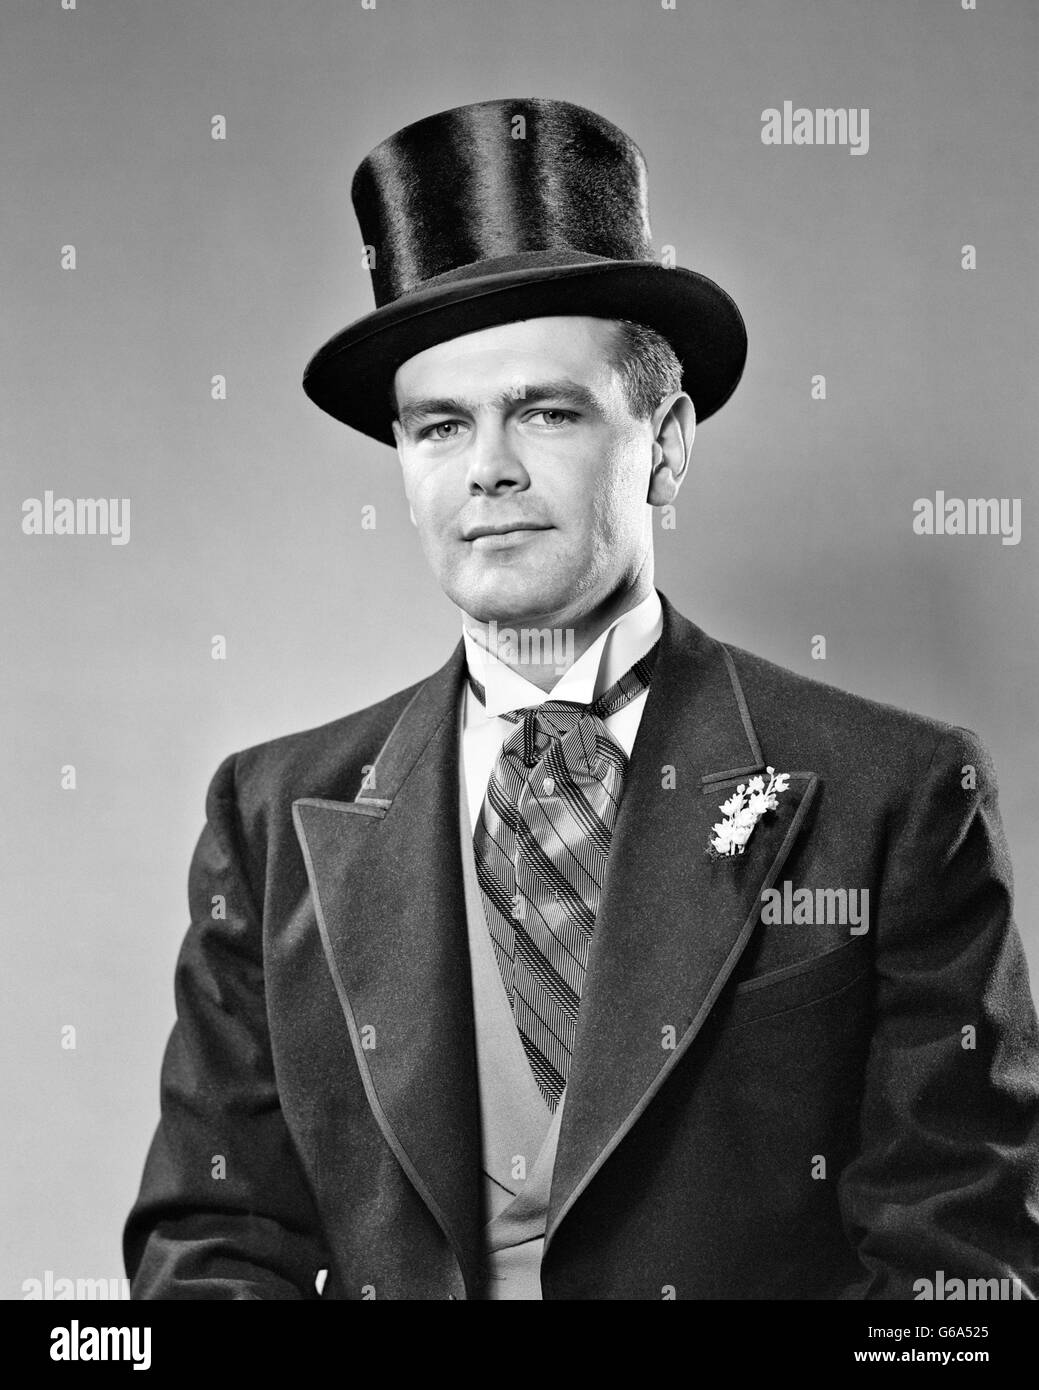 1940s 1950s Portrait Serious Bridegroom Wearing Ascot